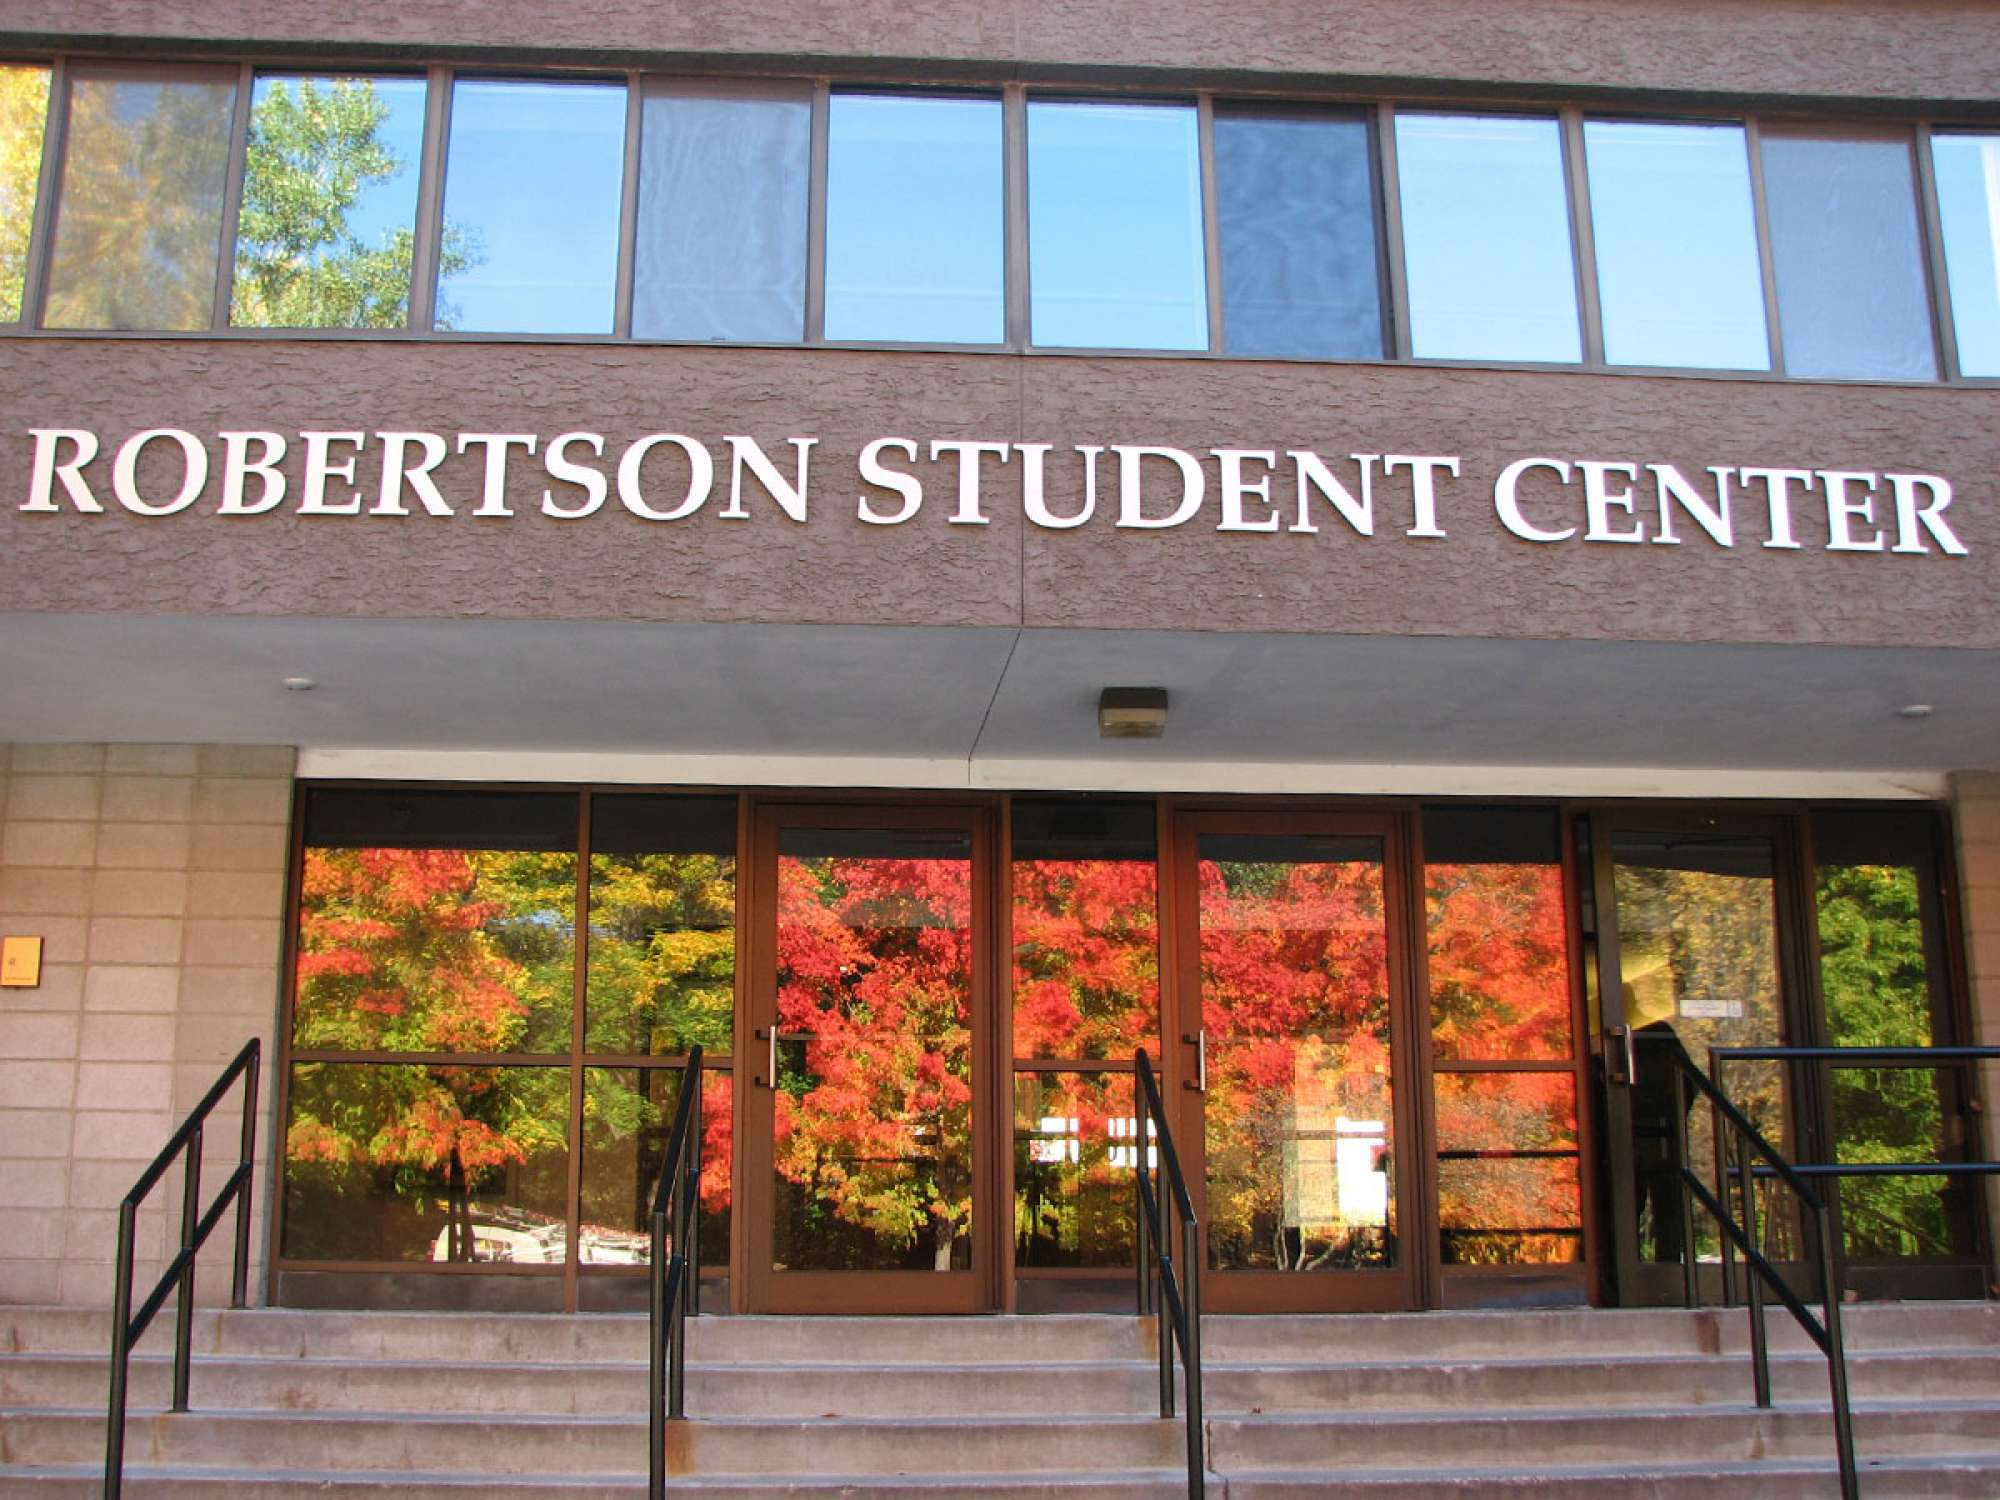 Main entrance to the Robertson Student Center